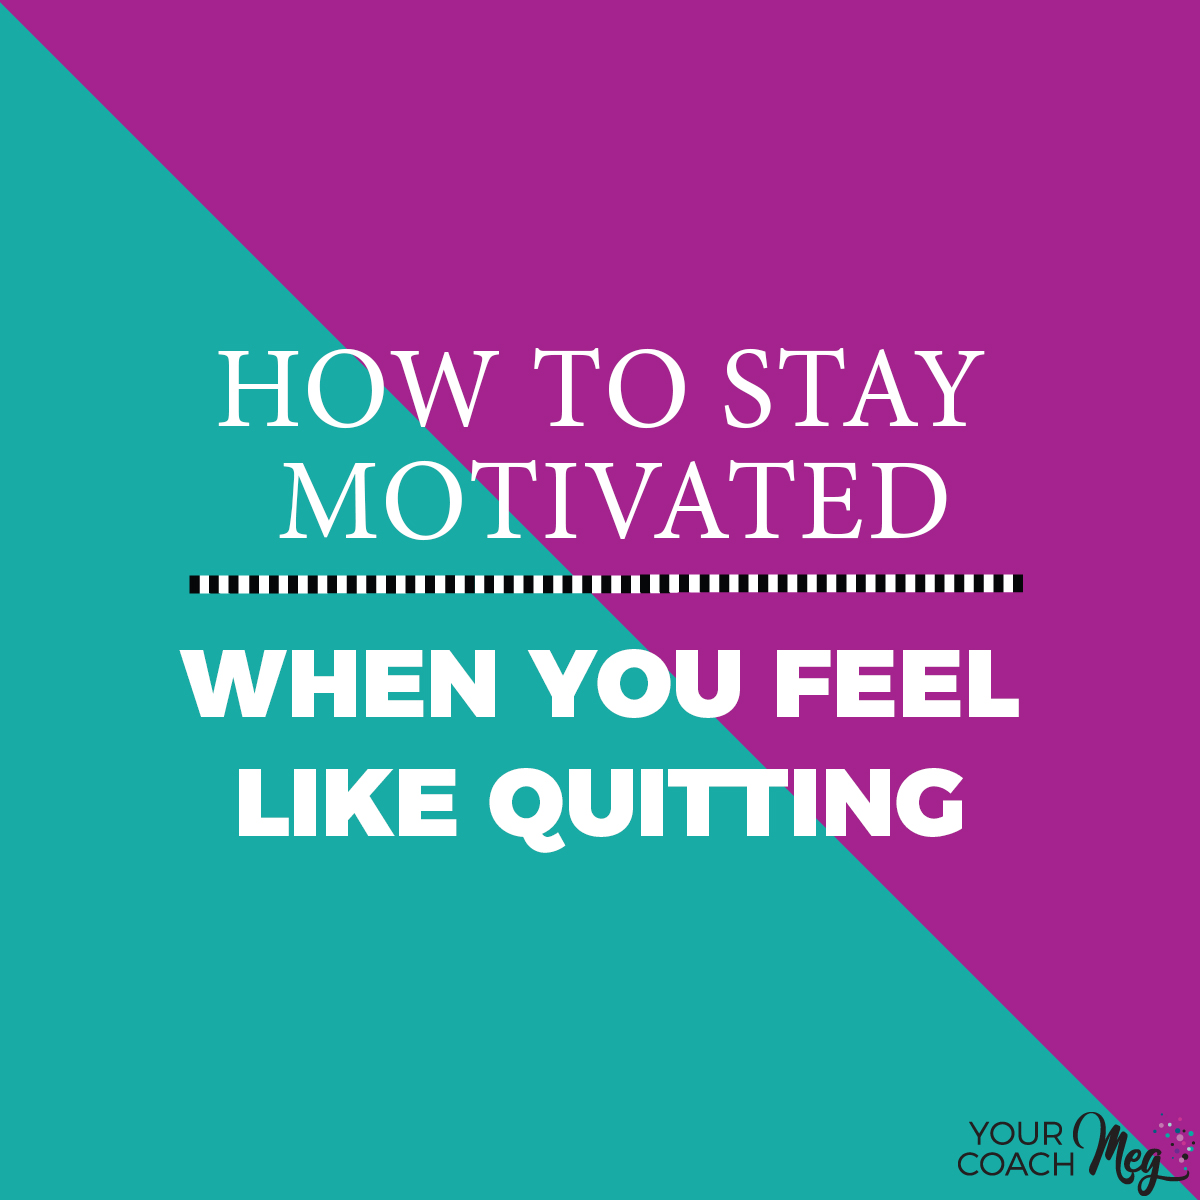 STAY MOTIVATED WHEN YOU FEEL LIKE QUITTING